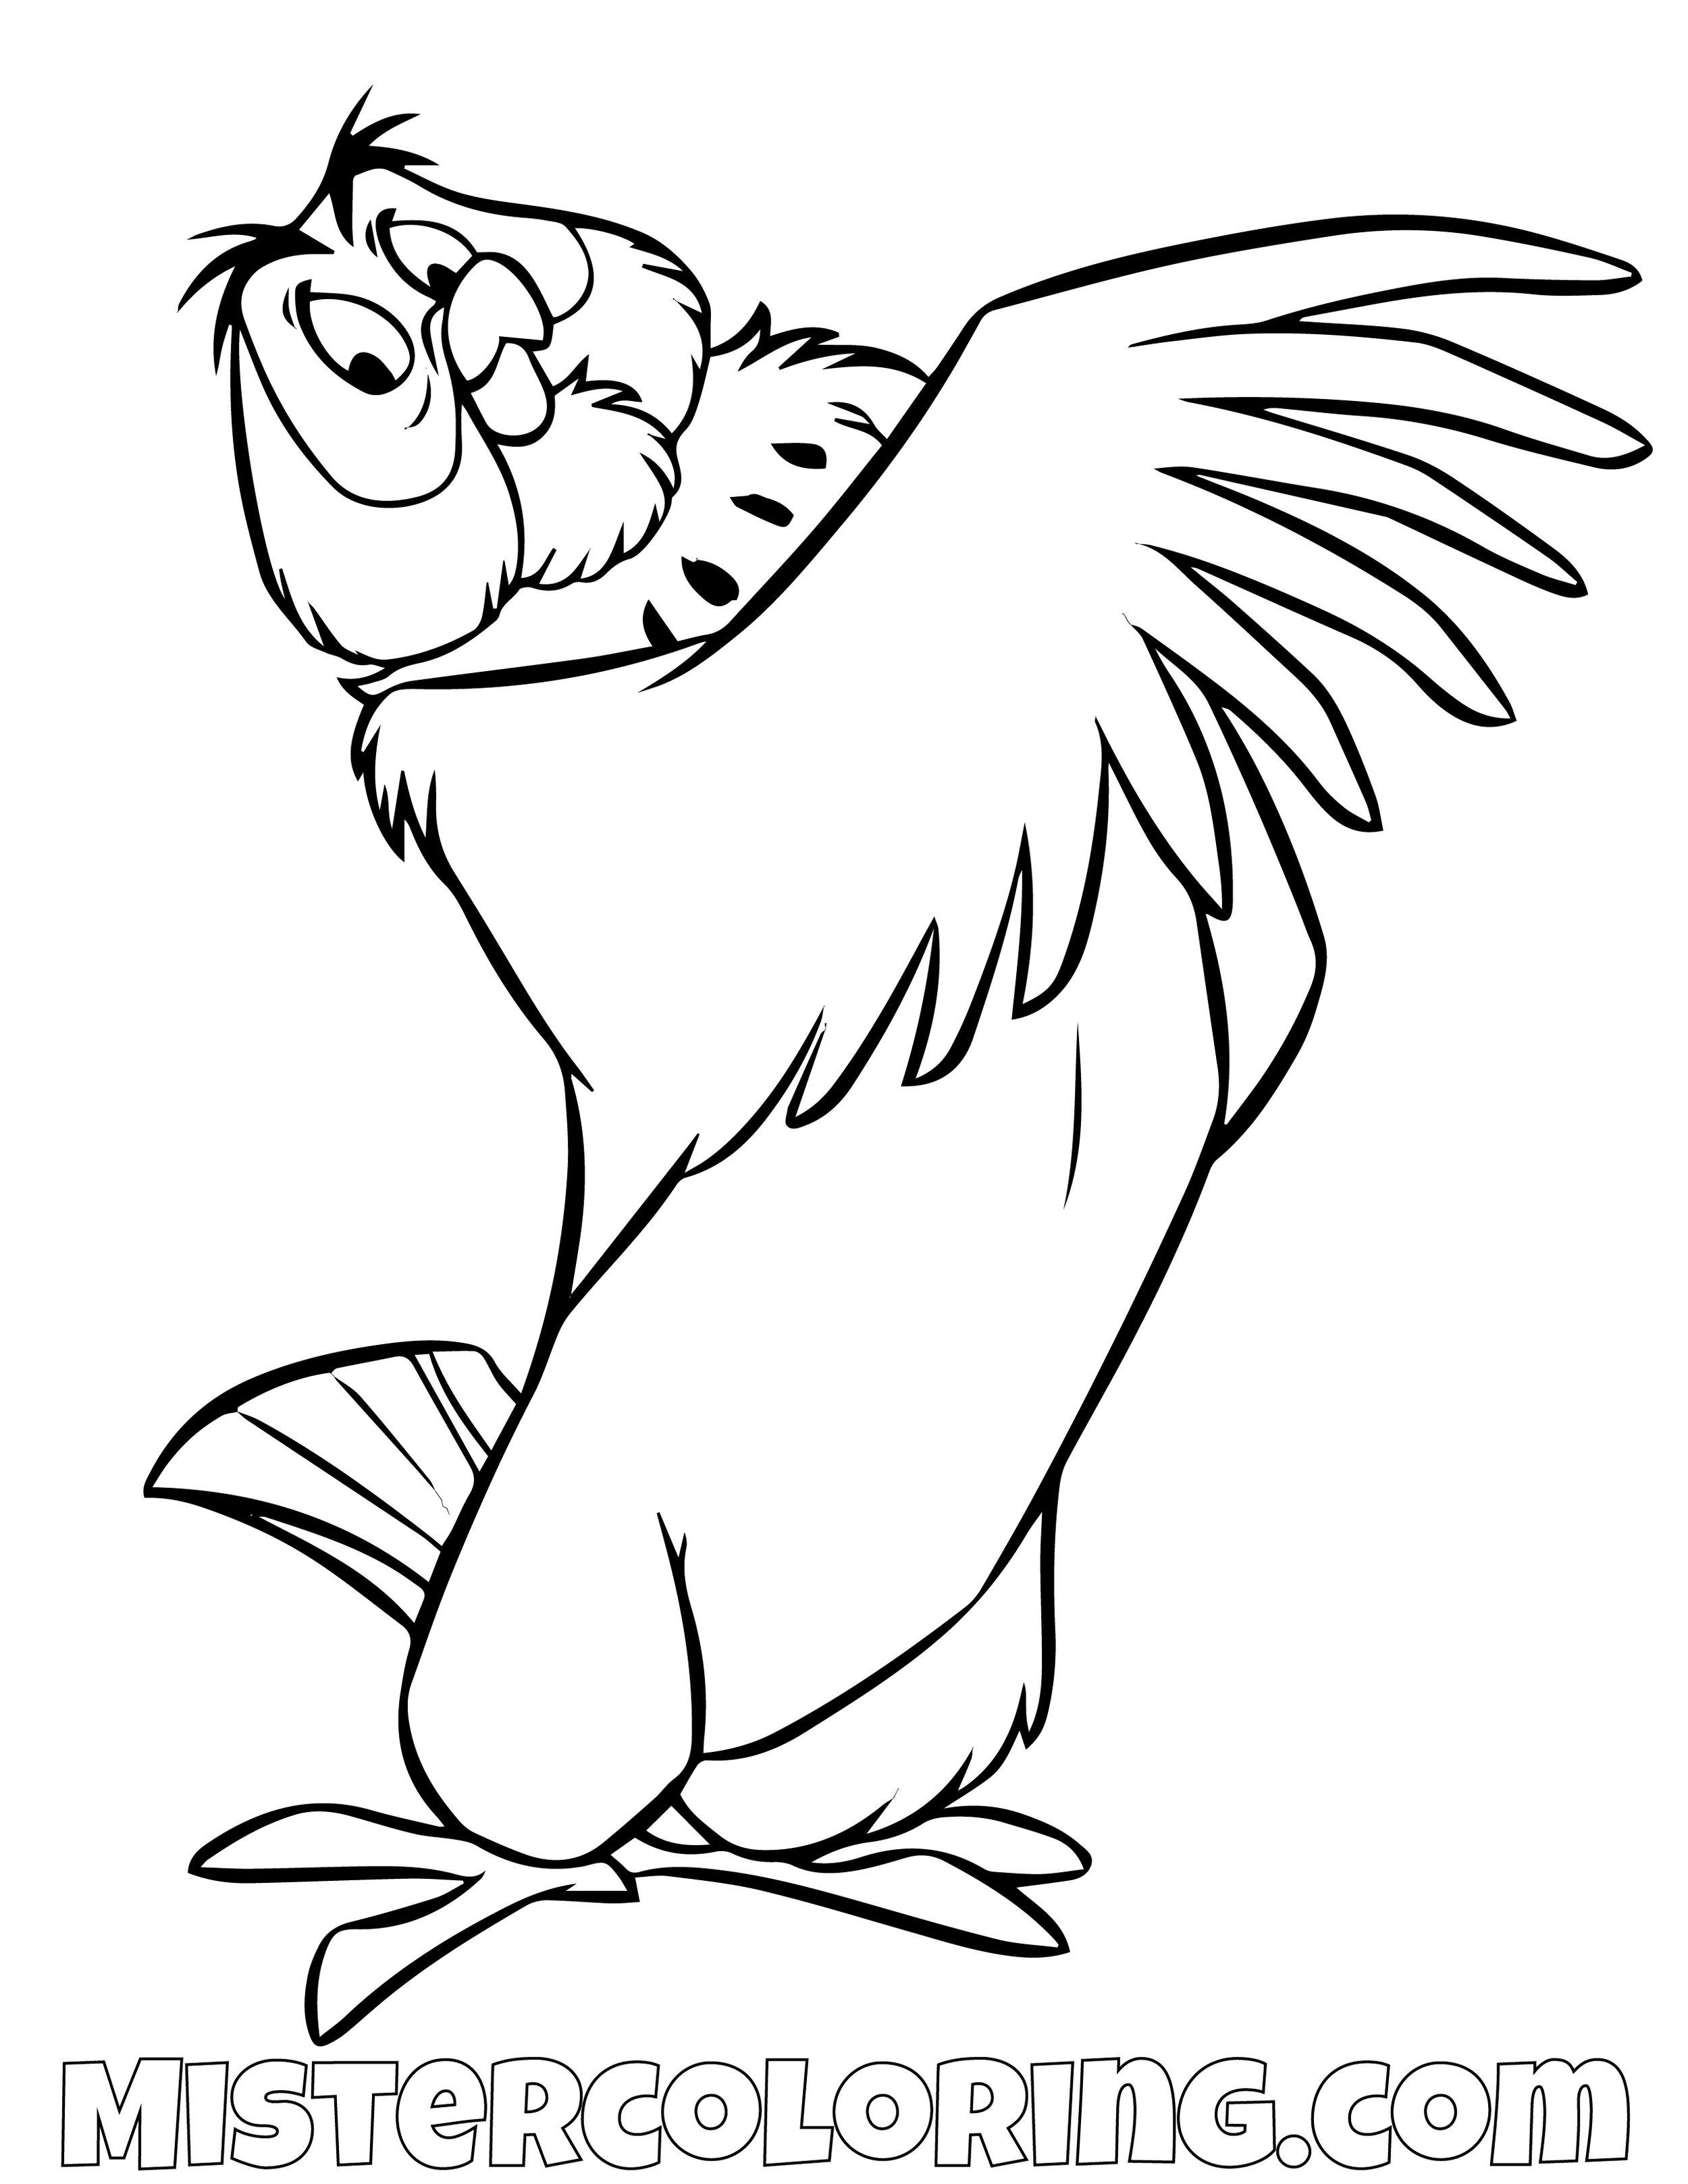 Cute Winnie The Pooh Coloring Pages Ideas For Children | Bear ... | 1294x1000